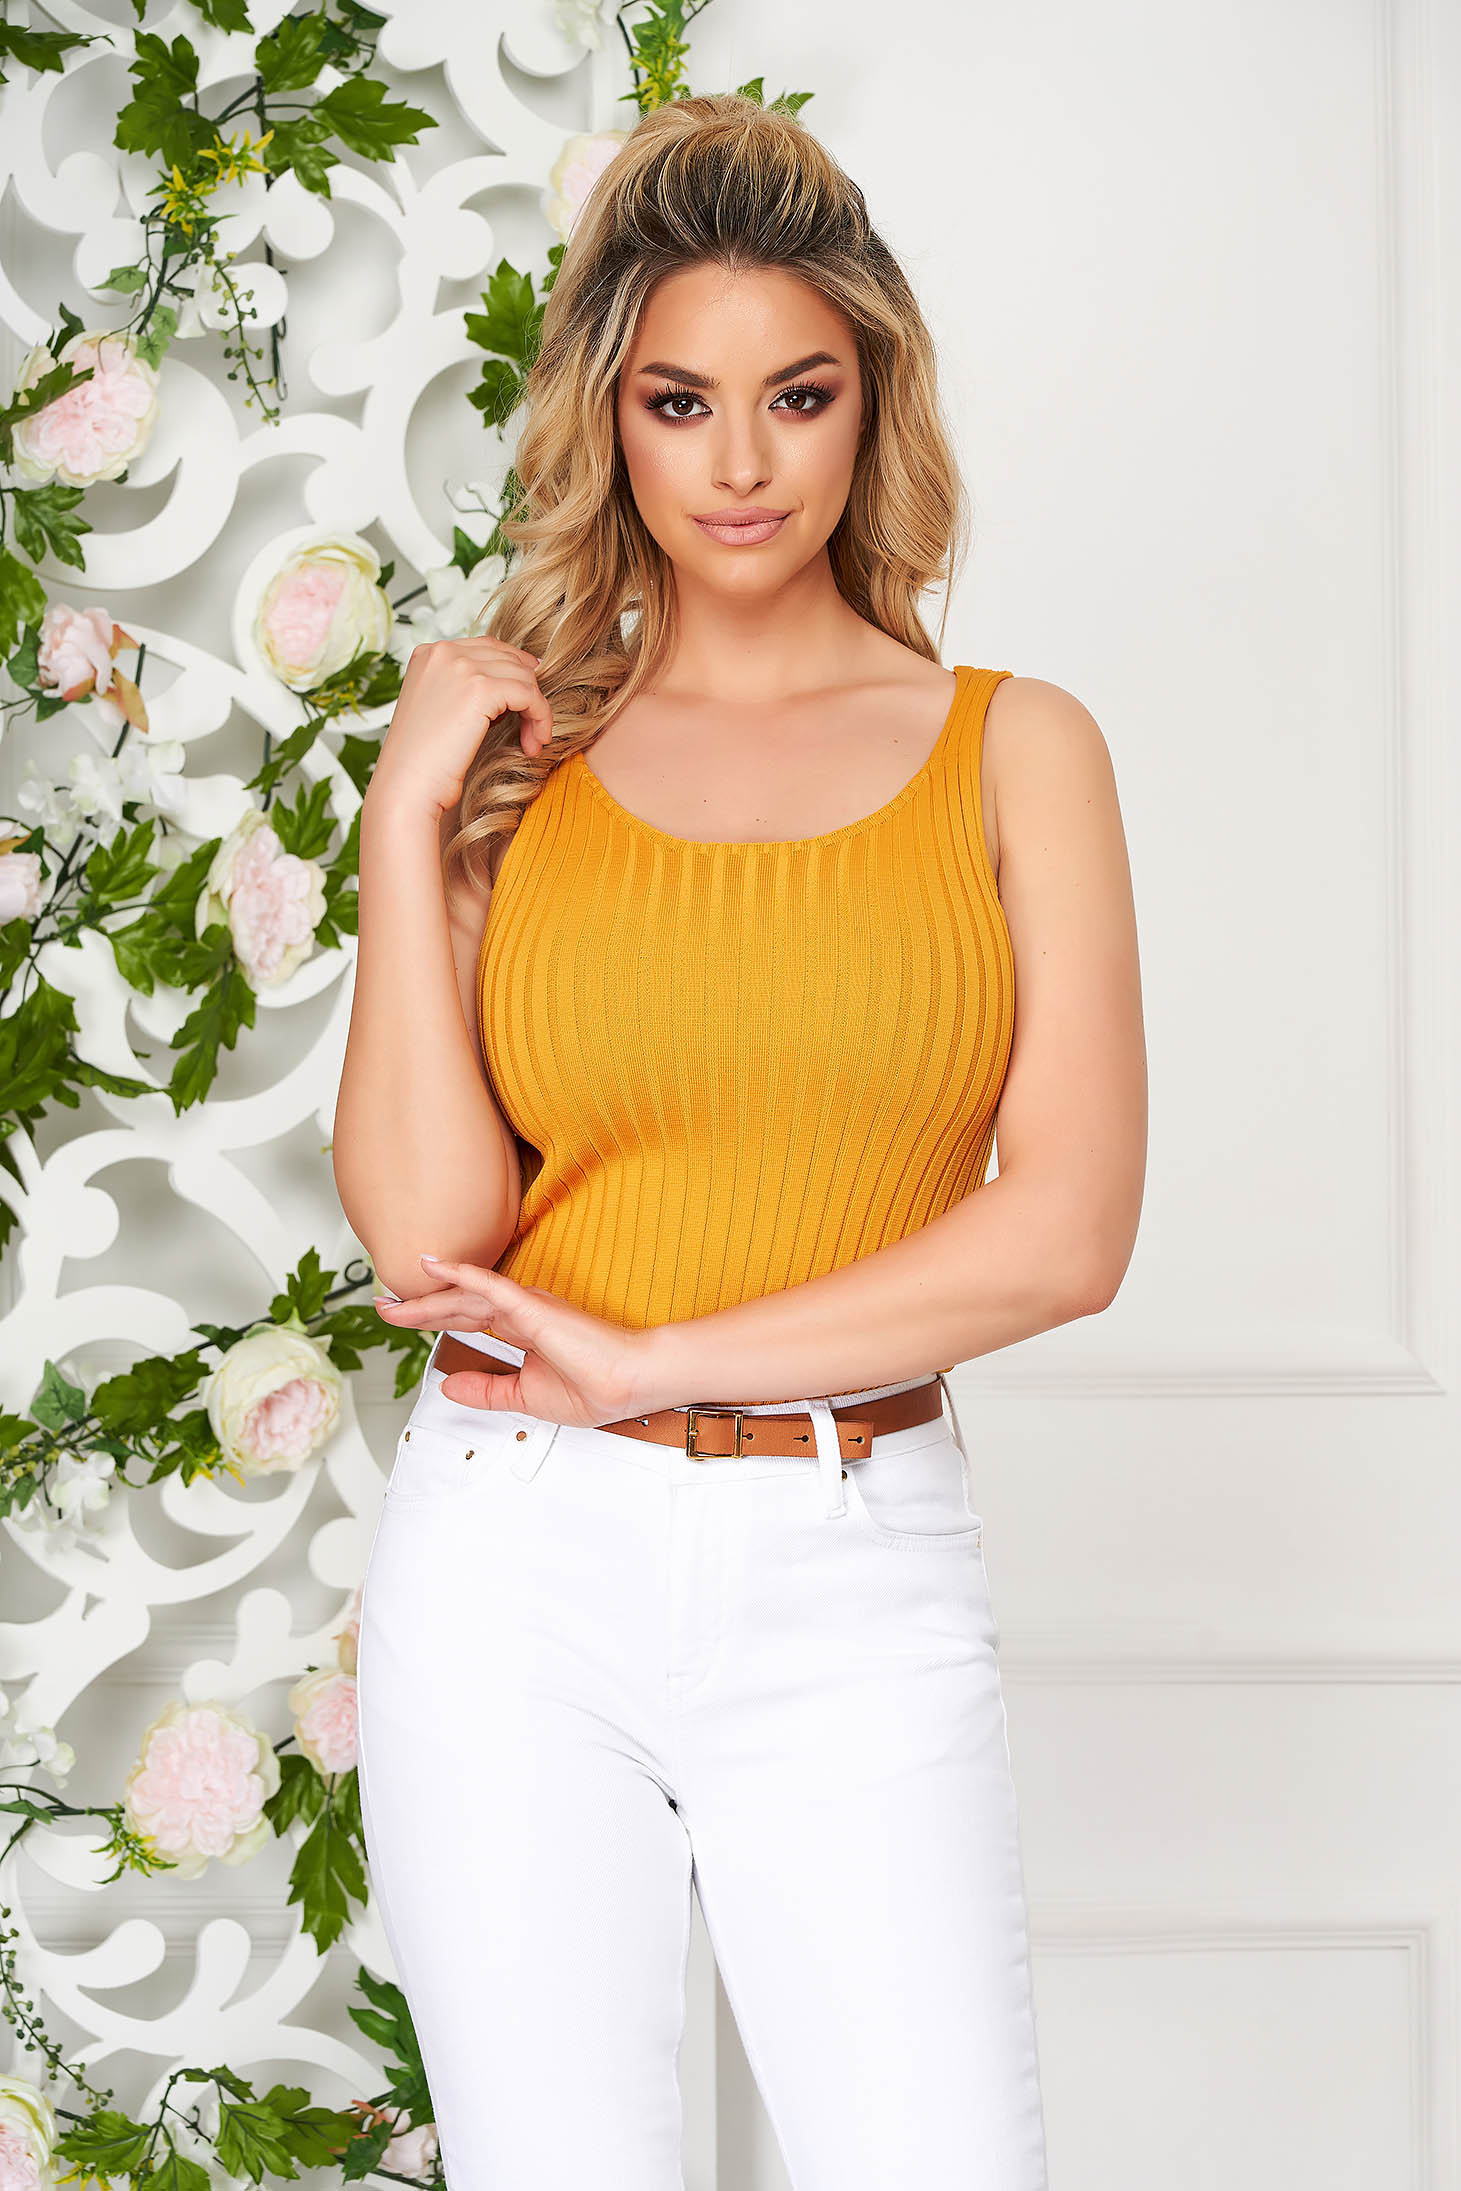 Casual short cut knitted thin straps with rounded cleavage mustard top shirt